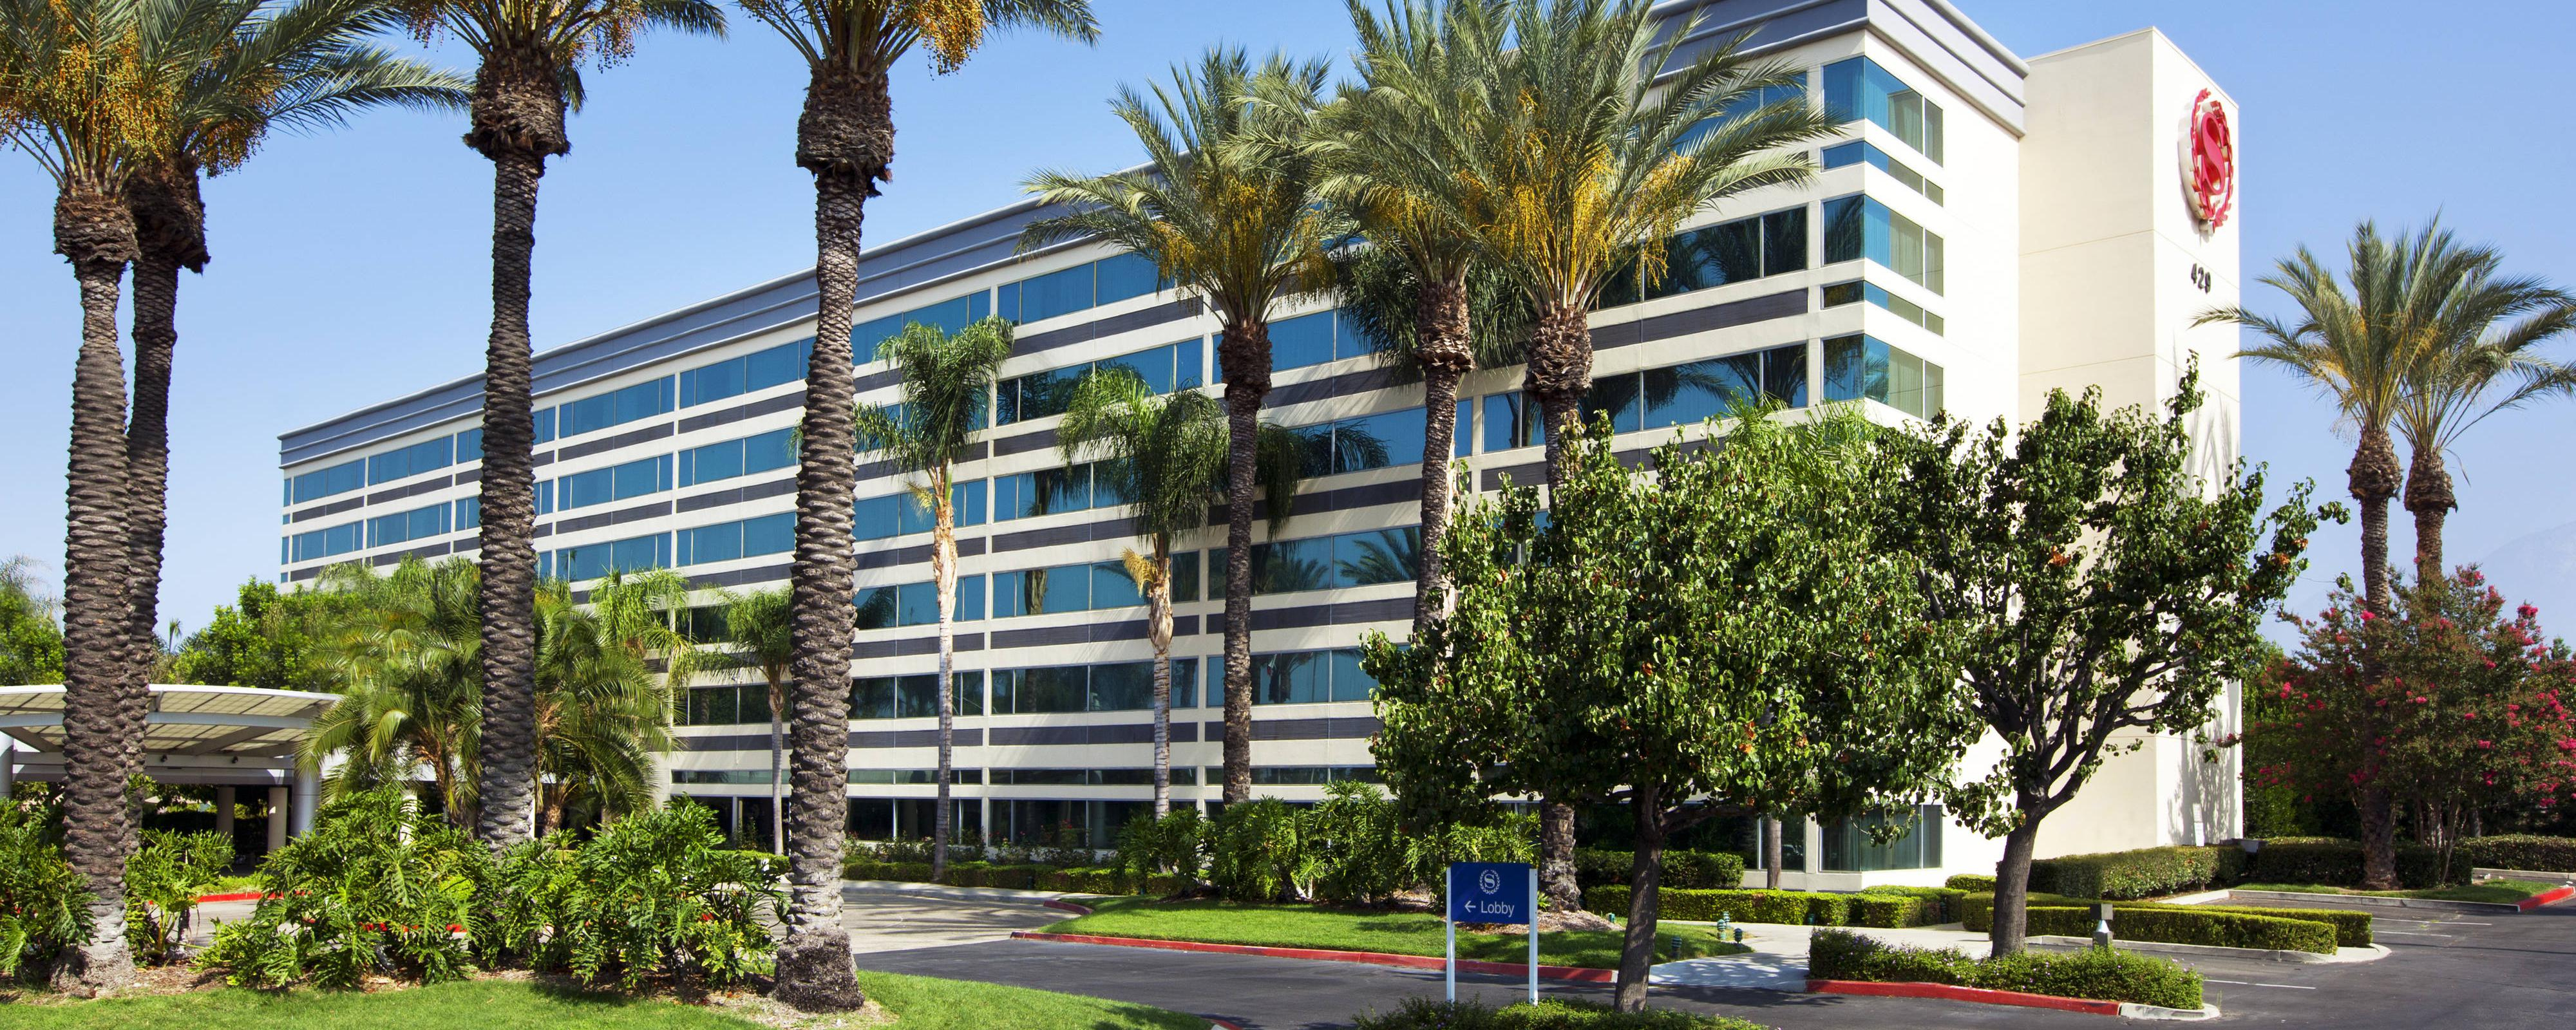 Hotel In Ontario | Sheraton Ontario Airport Hotel - Spg Hotels California Map